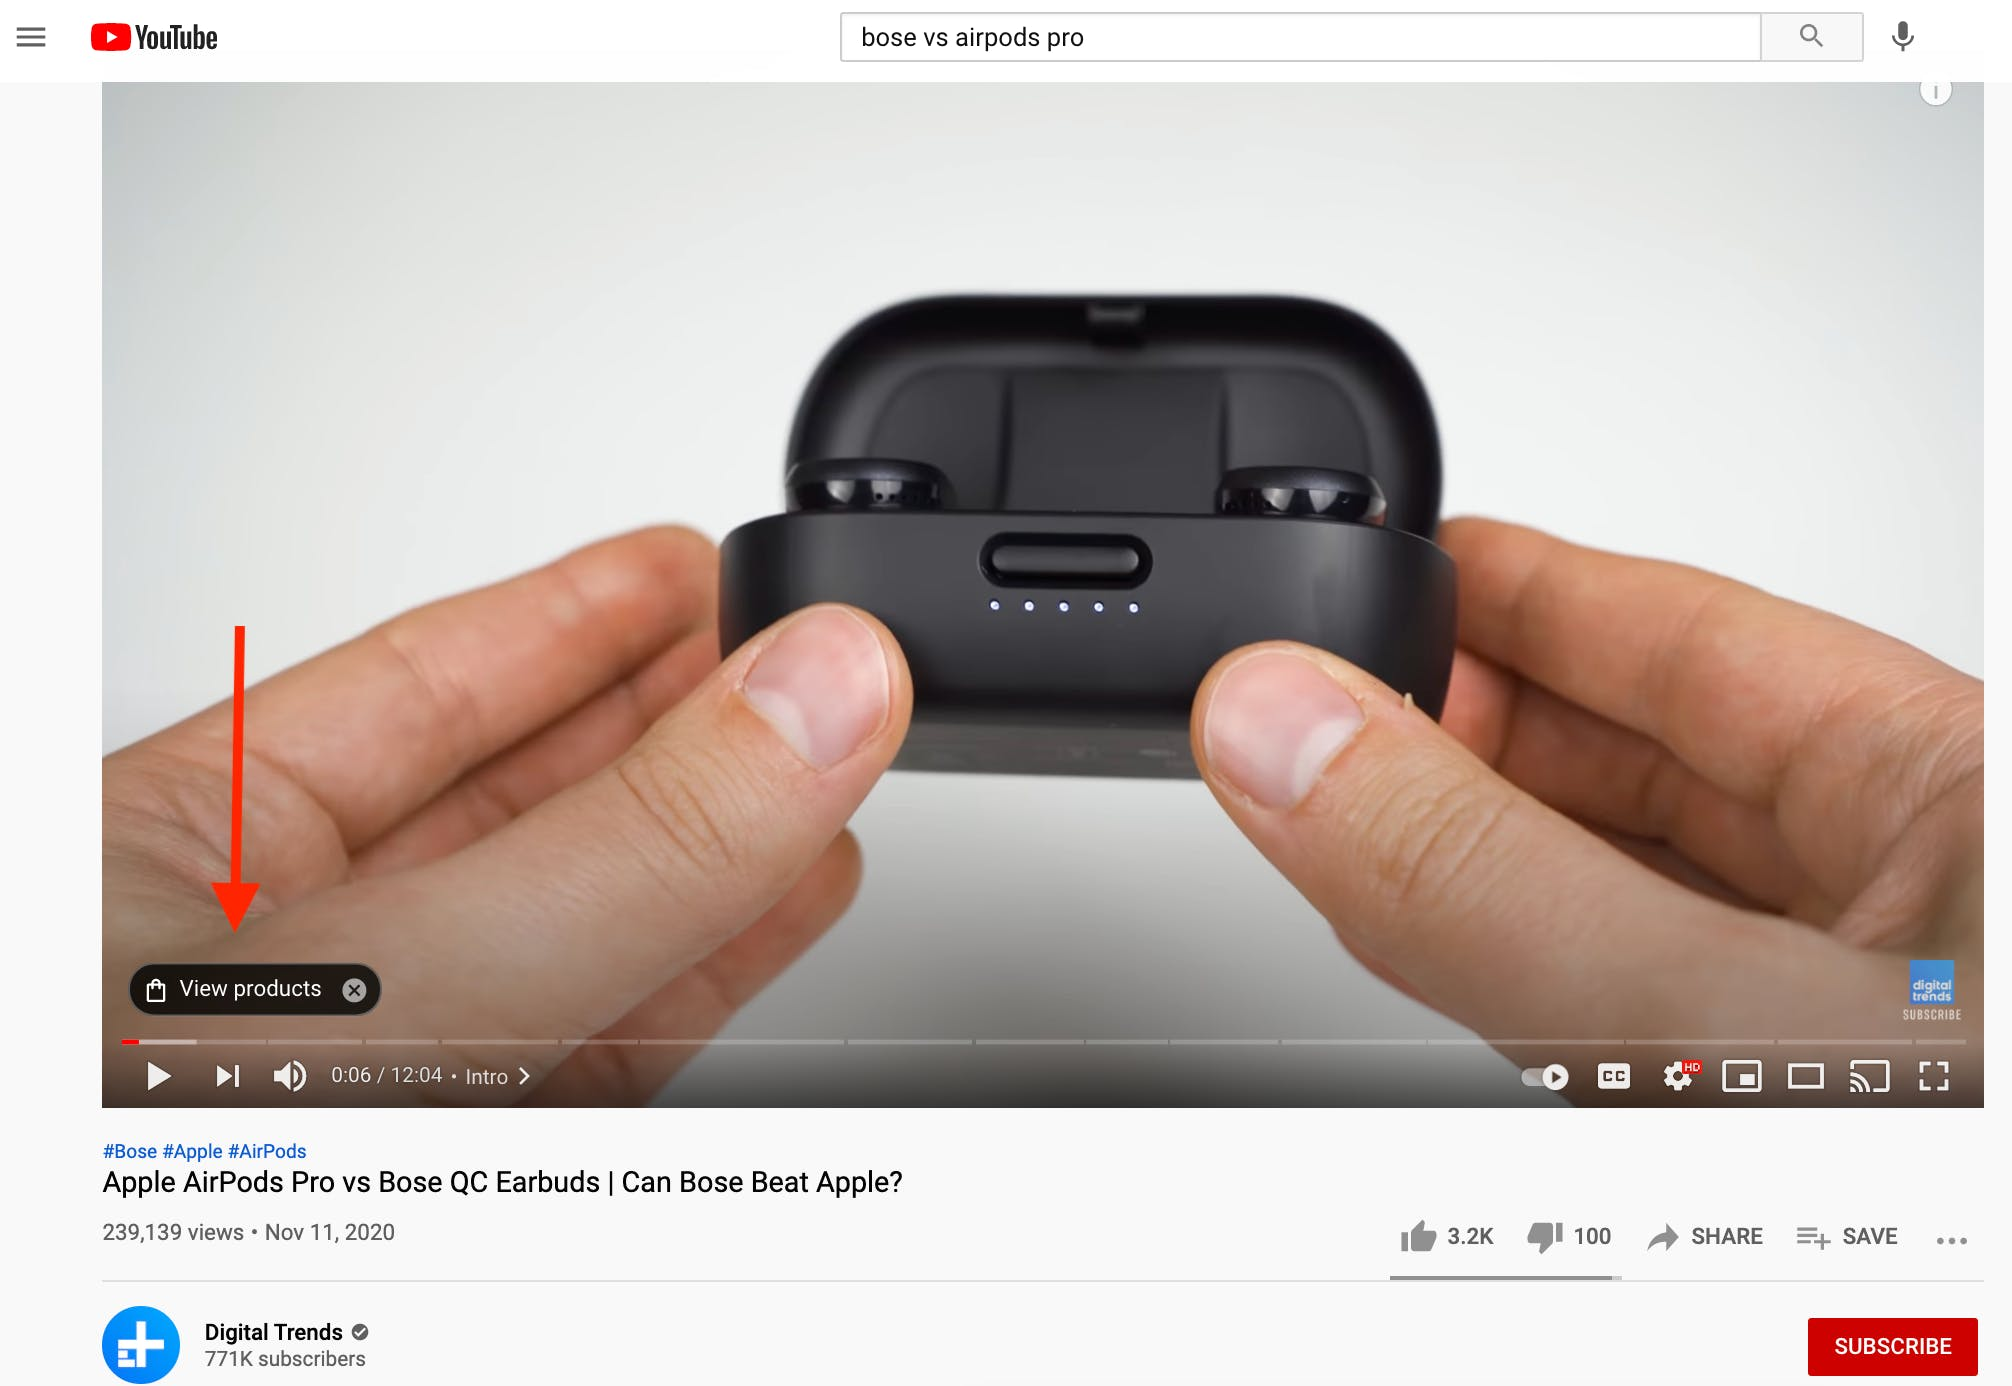 YouTube video comparing headphones showing view products button embedded within video